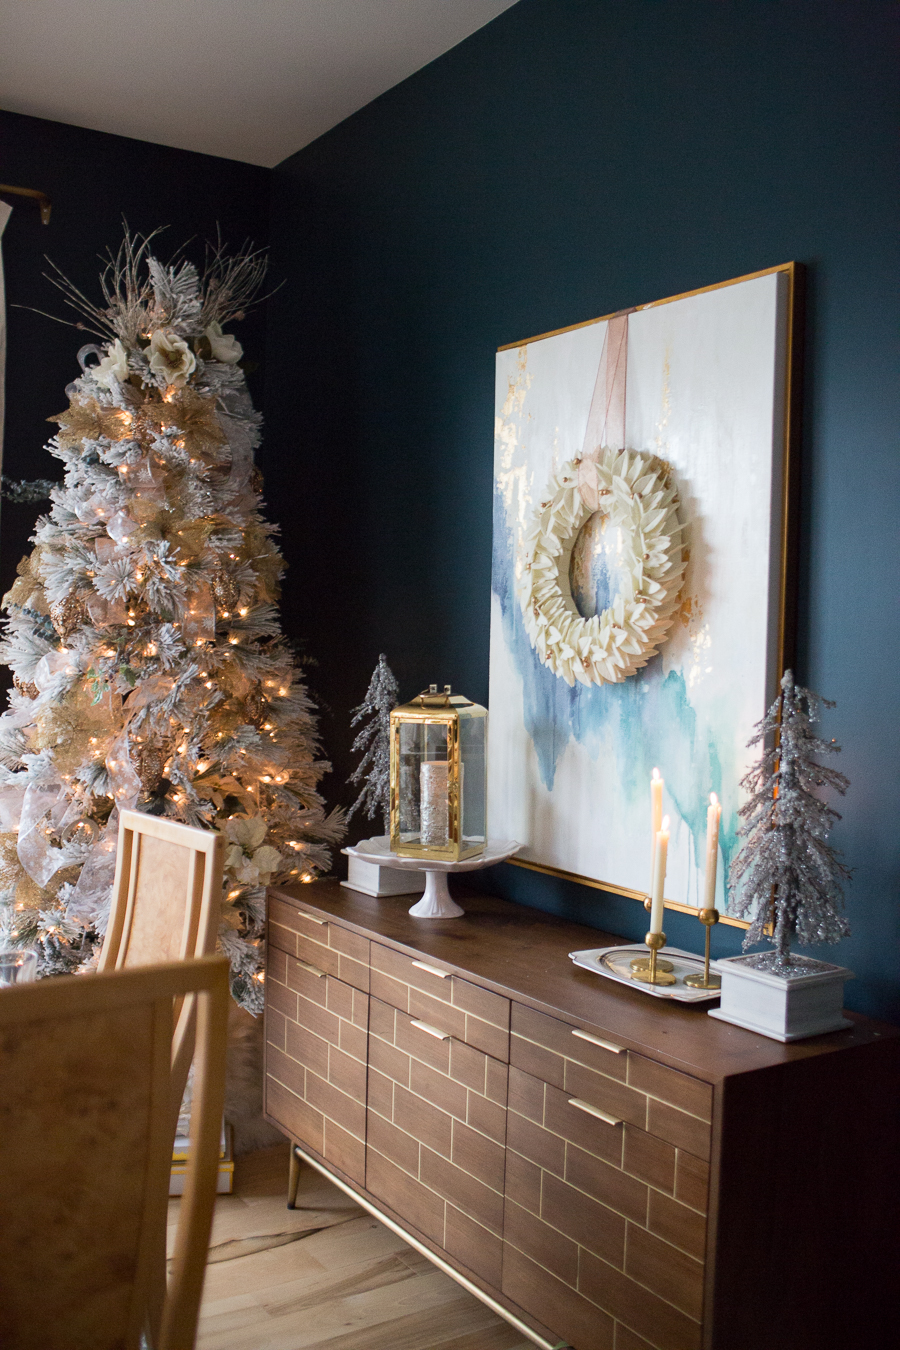 Budget Friendly Holiday Decor from Walmart wood tray with a gold lantern and pioneer woman white cakestand on top of a large quartz waterfall island Christmas tree in a dark blue green dining room with an abstract painting hanging on the wall